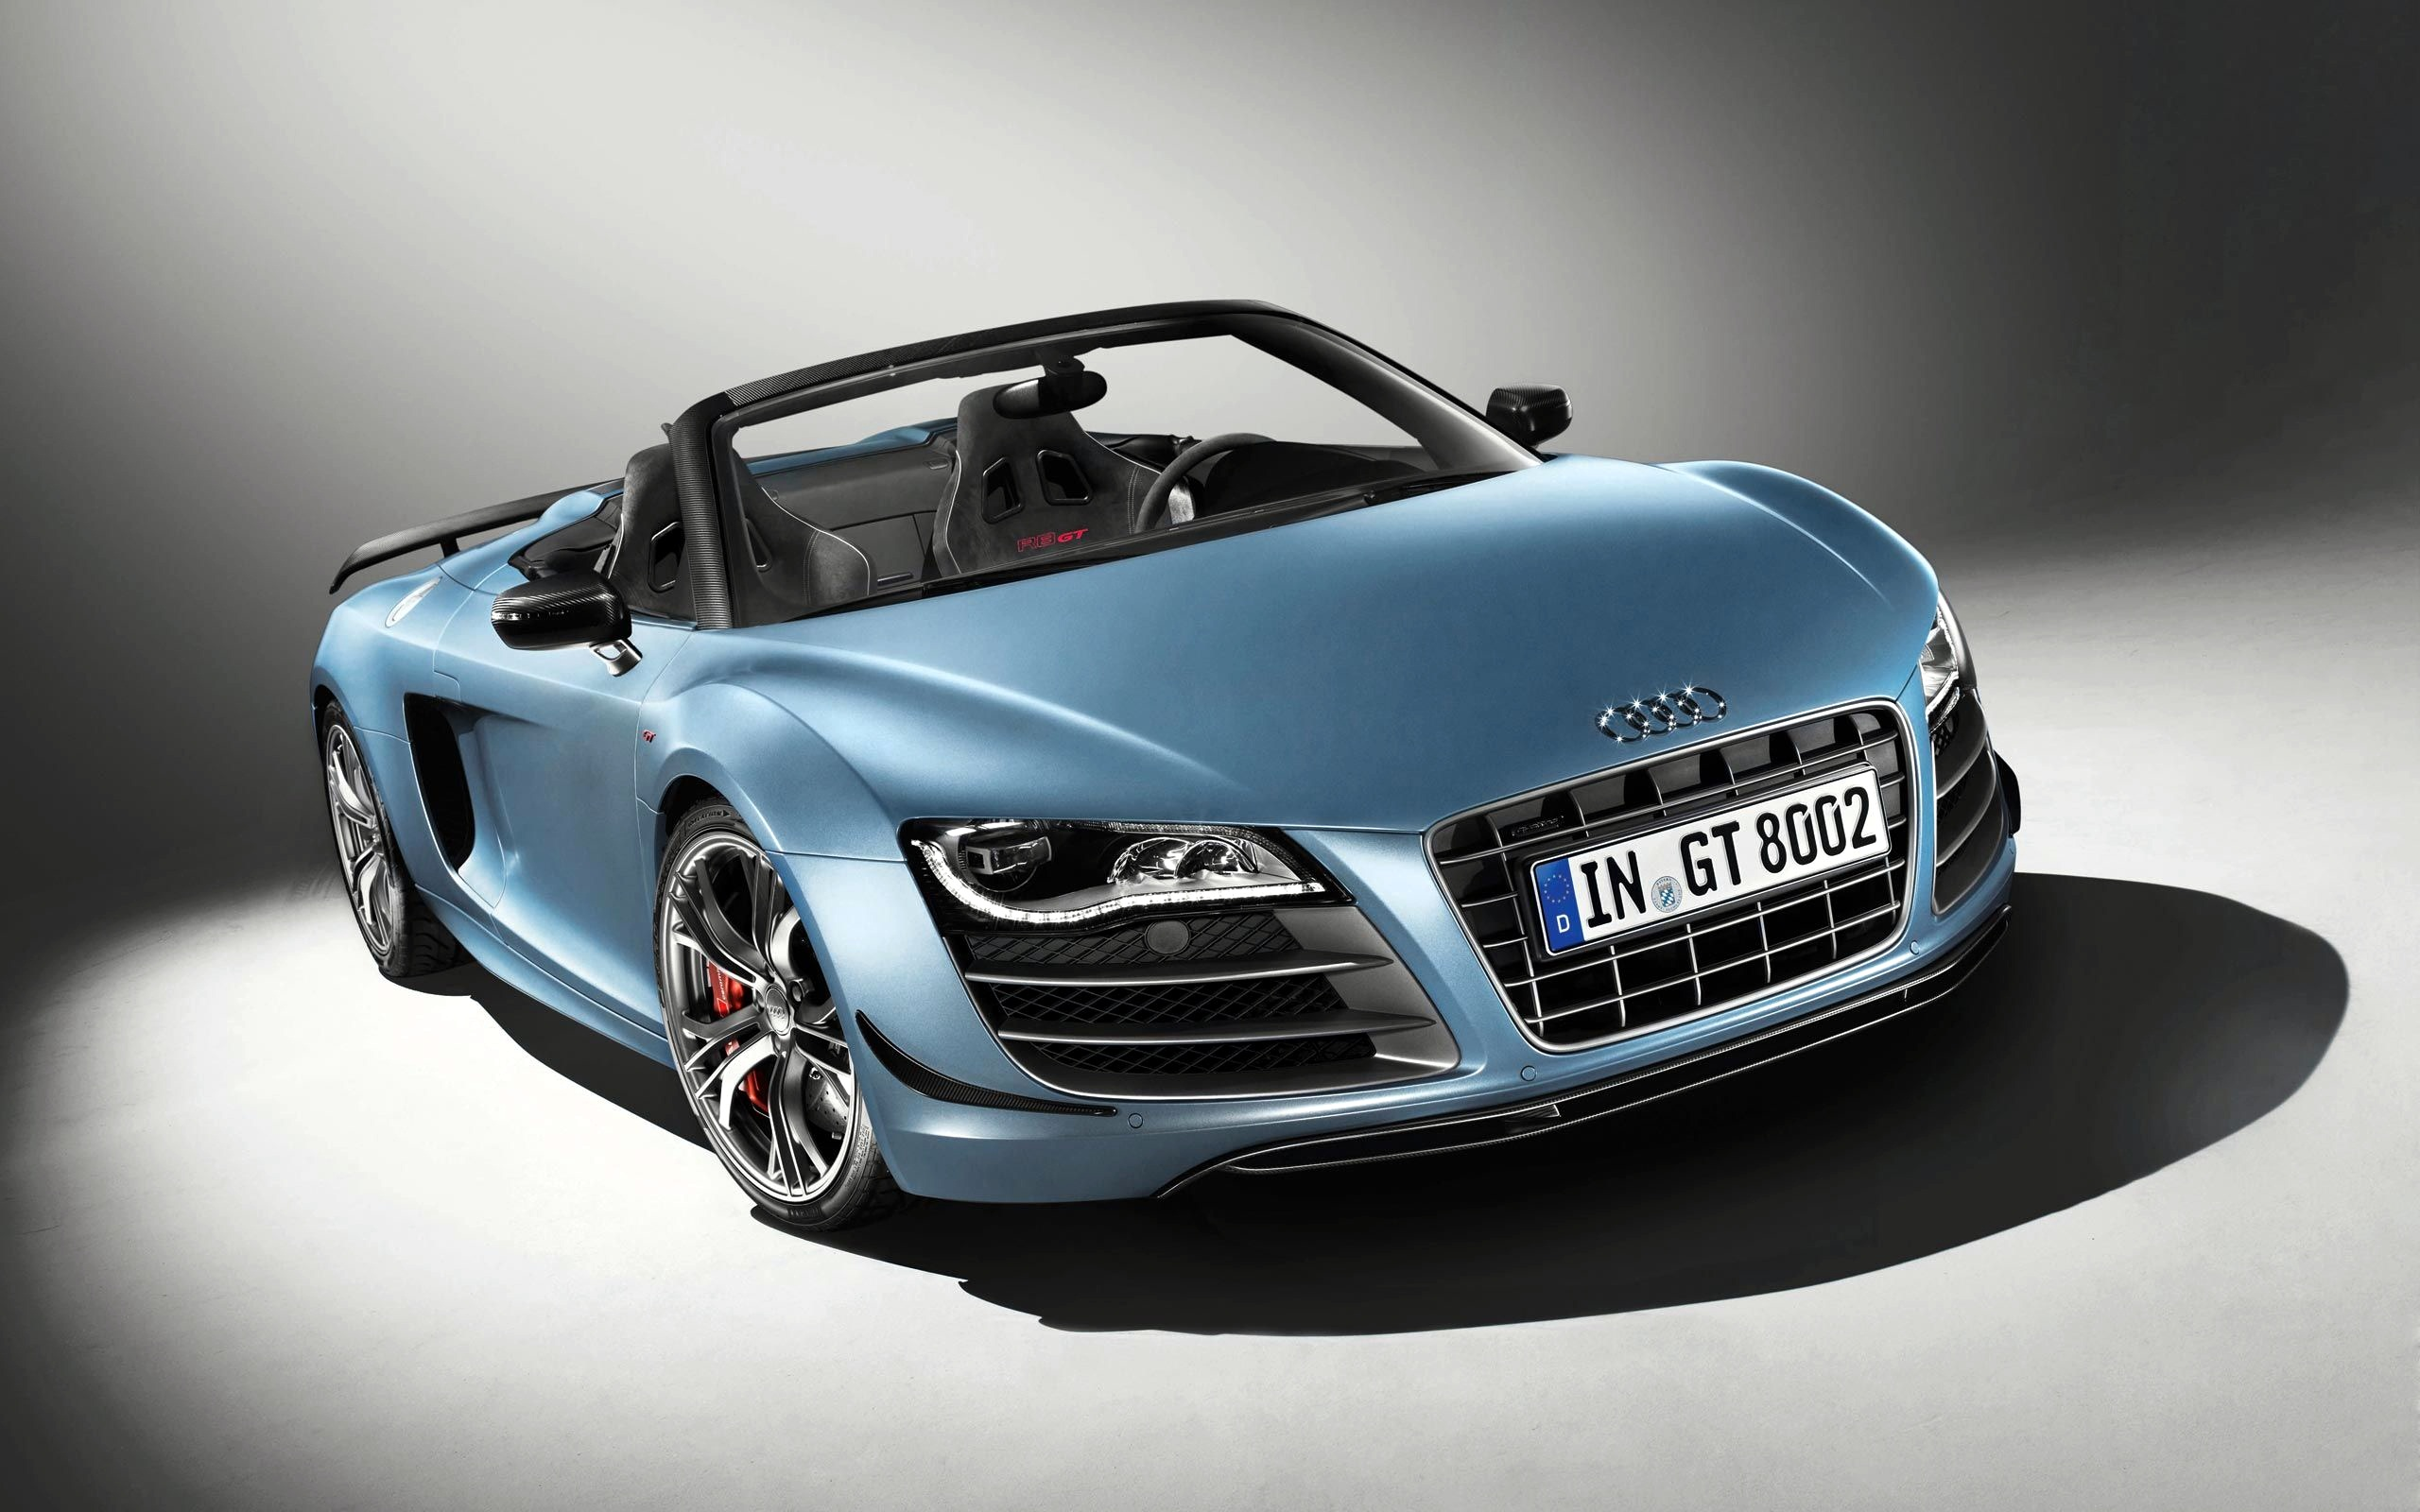 Wallpaper Of Car A Light Blue Audi R8 GT Wallpaper World 2560x1600